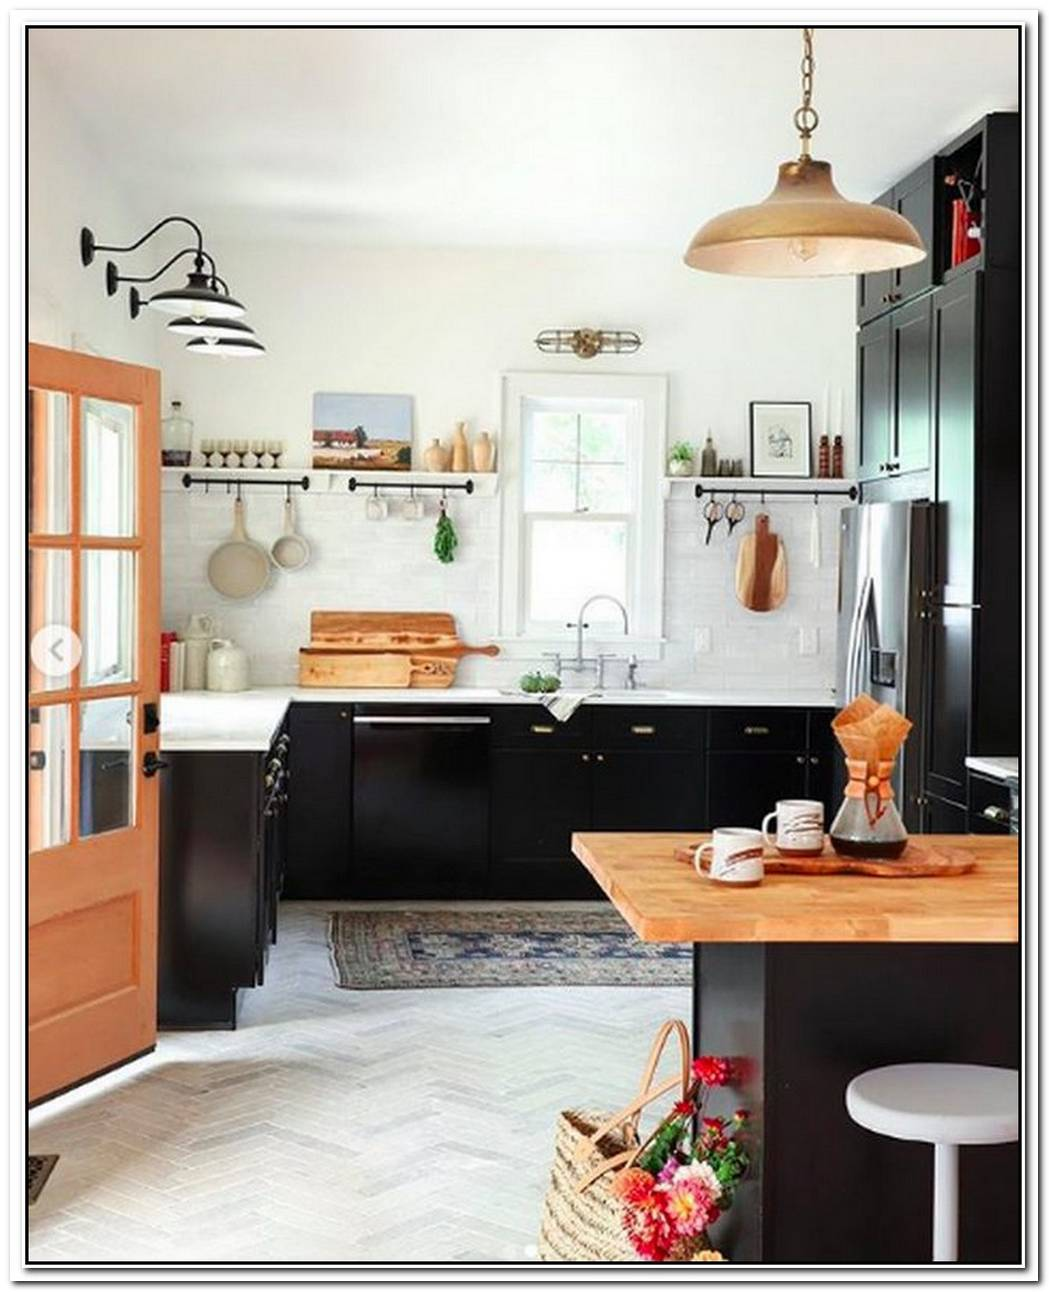 Compelling Contrasts Create A Fresh And Dynamic Kitchen